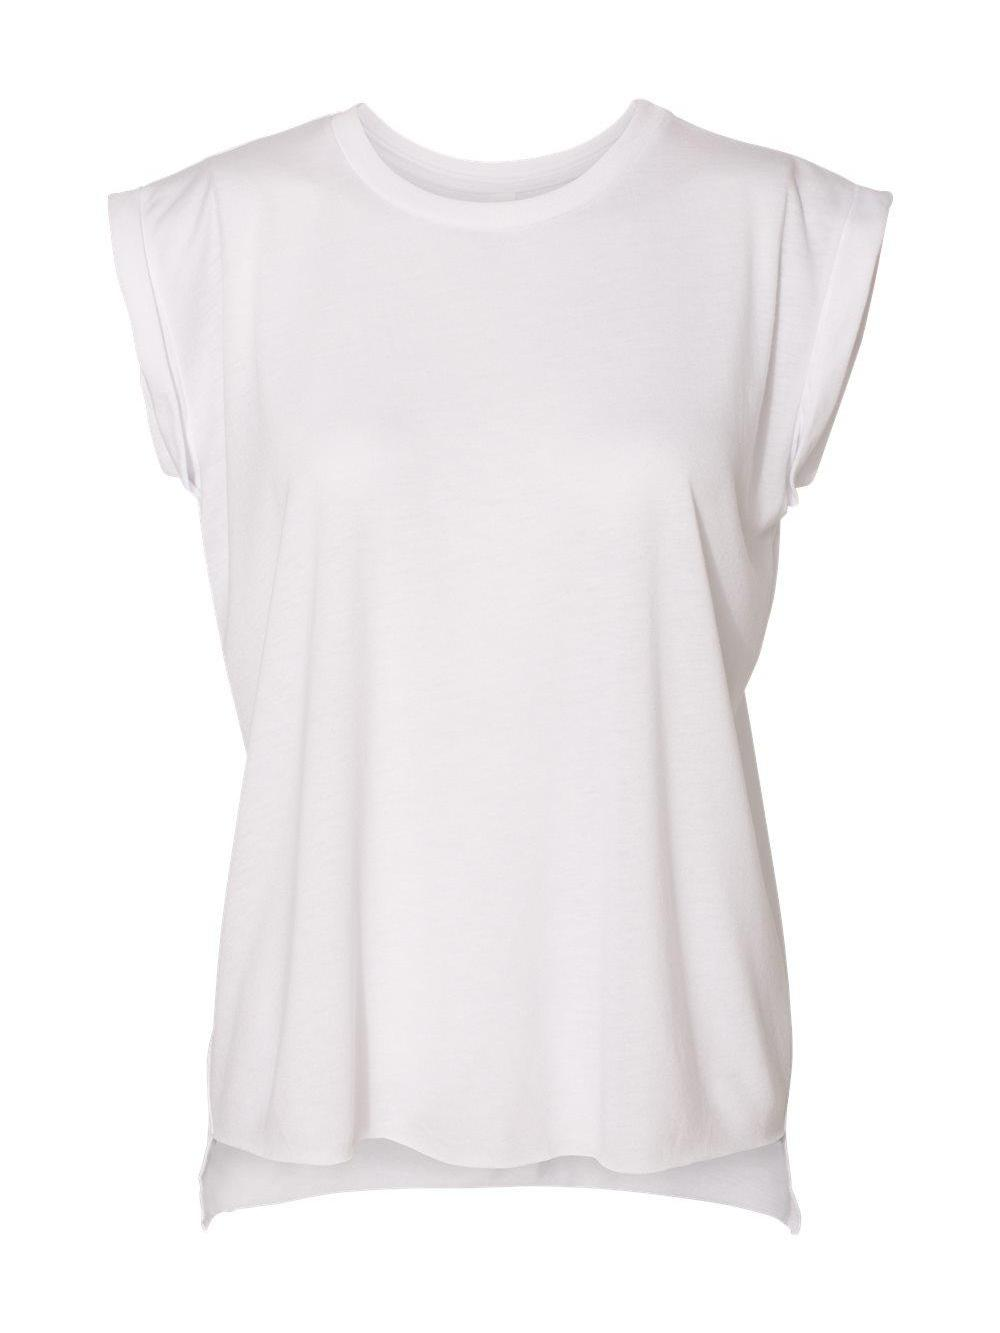 Bella-Canvas-Women-039-s-Flowy-Muscle-Tee-with-Rolled-Cuffs-8804 thumbnail 33